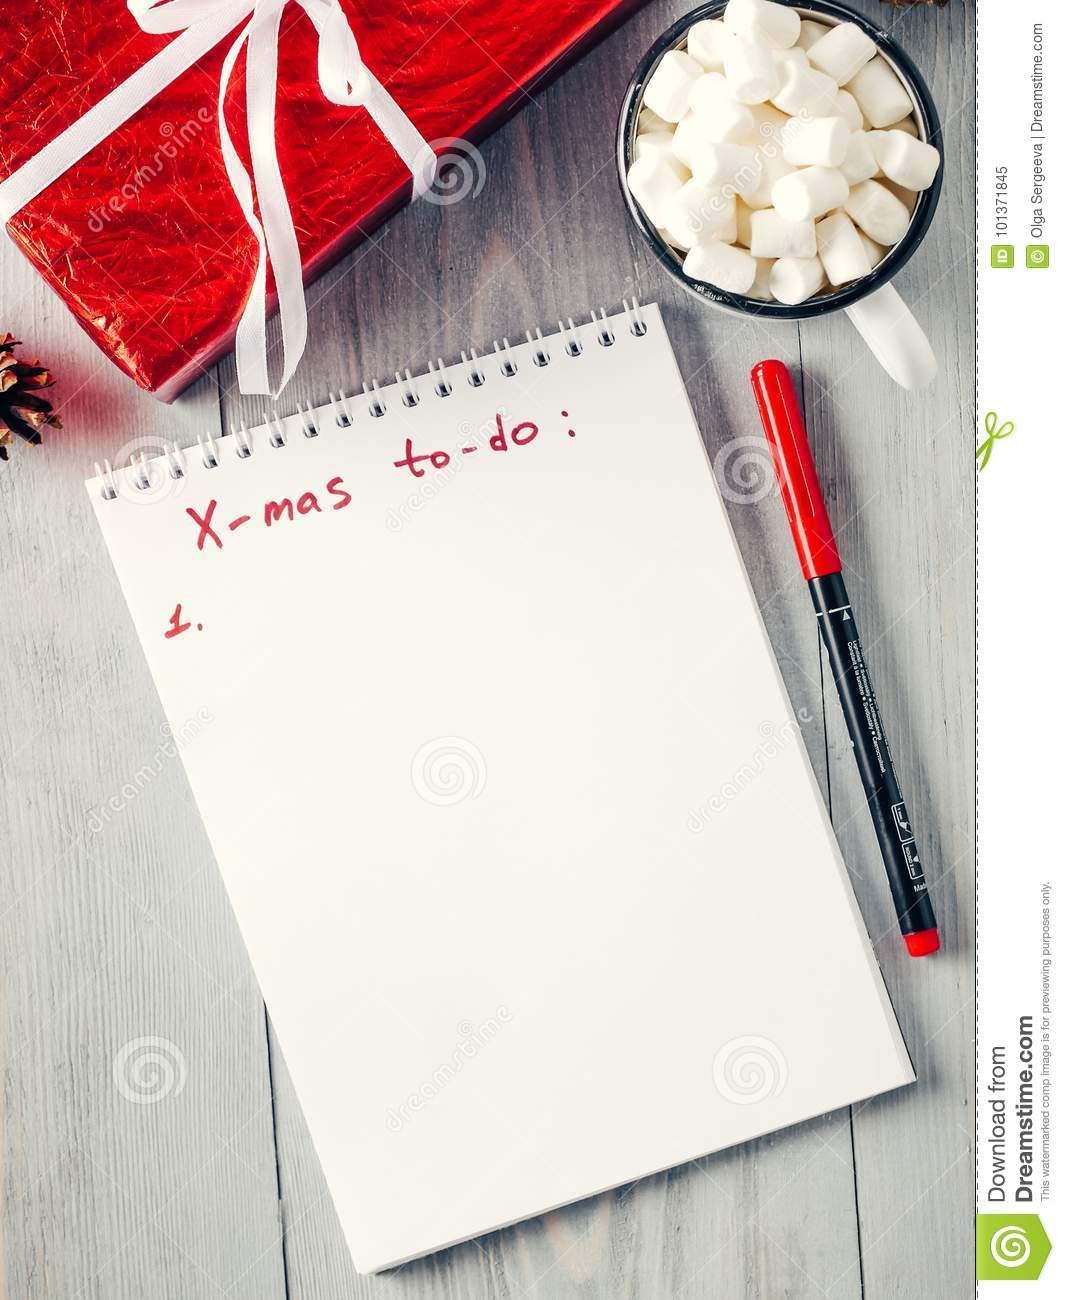 Christmas Gifts Shopping Planning List Stock Image - Image of blank ...